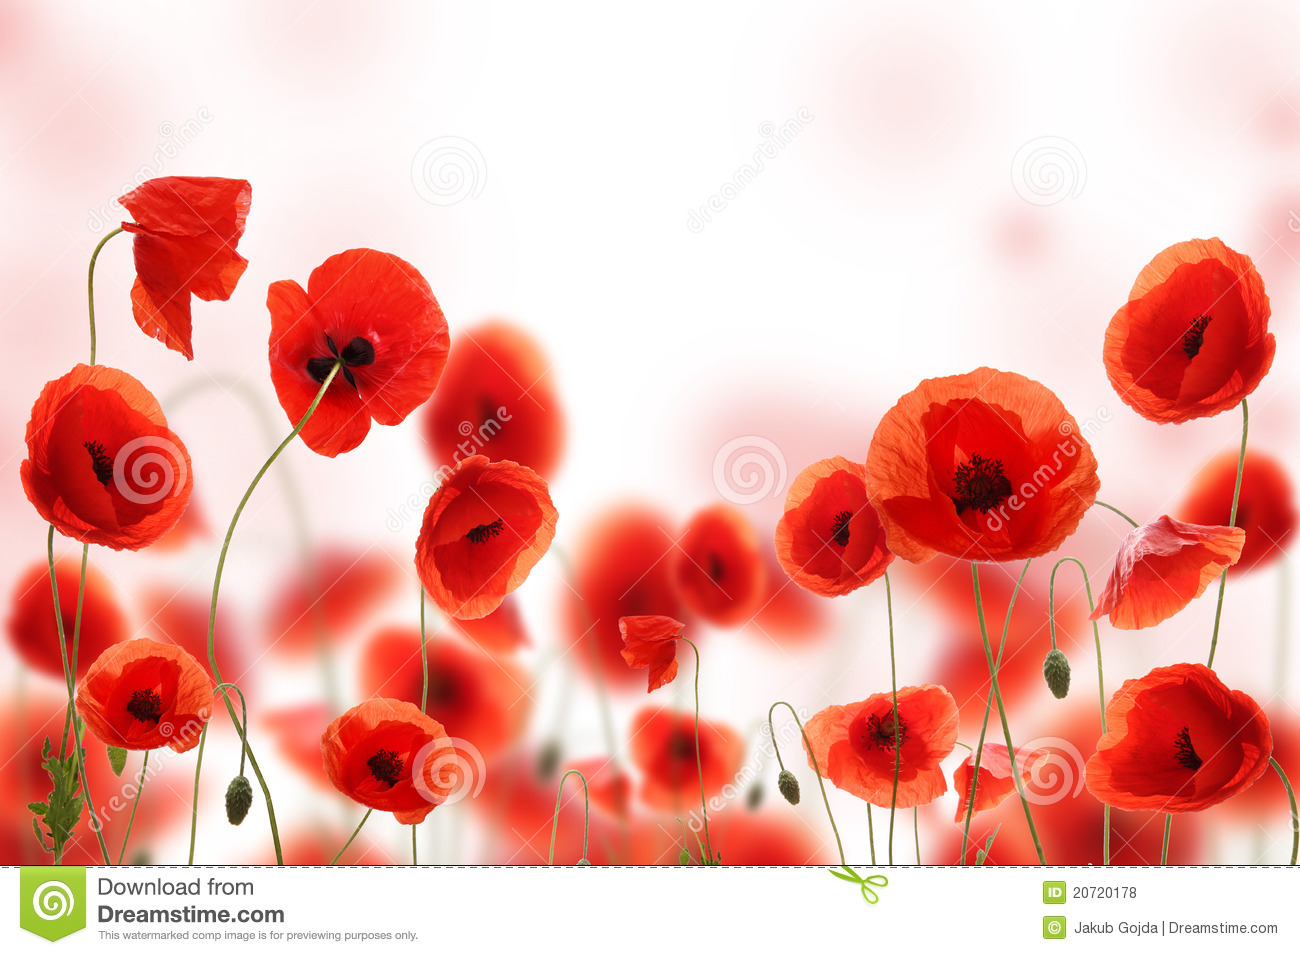 Poppy flower field at night royalty free stock photography image - Poppy Flowers Royalty Free Stock Photos